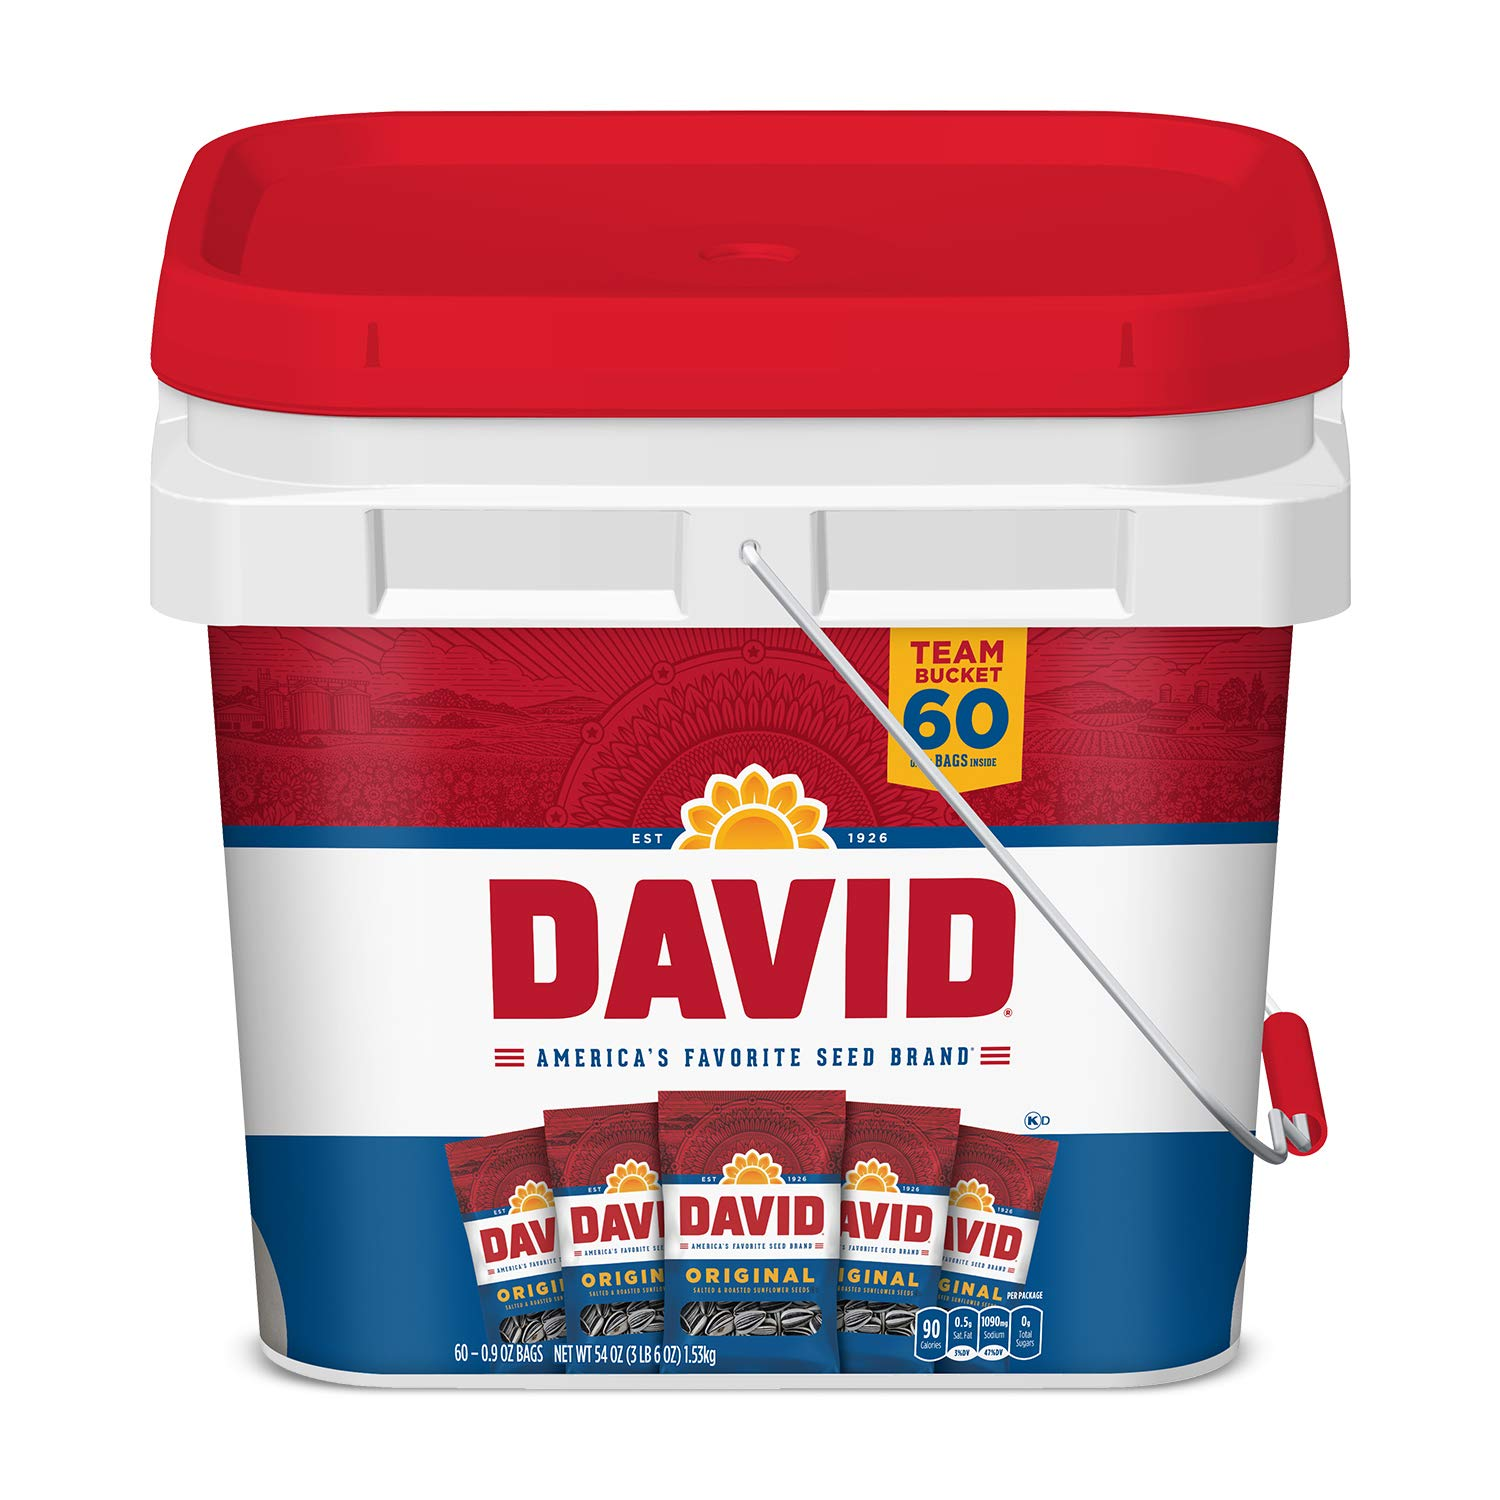 David Seeds Original Sunflower Bucket, 3.37 Pound by DAVID Seeds (Image #1)